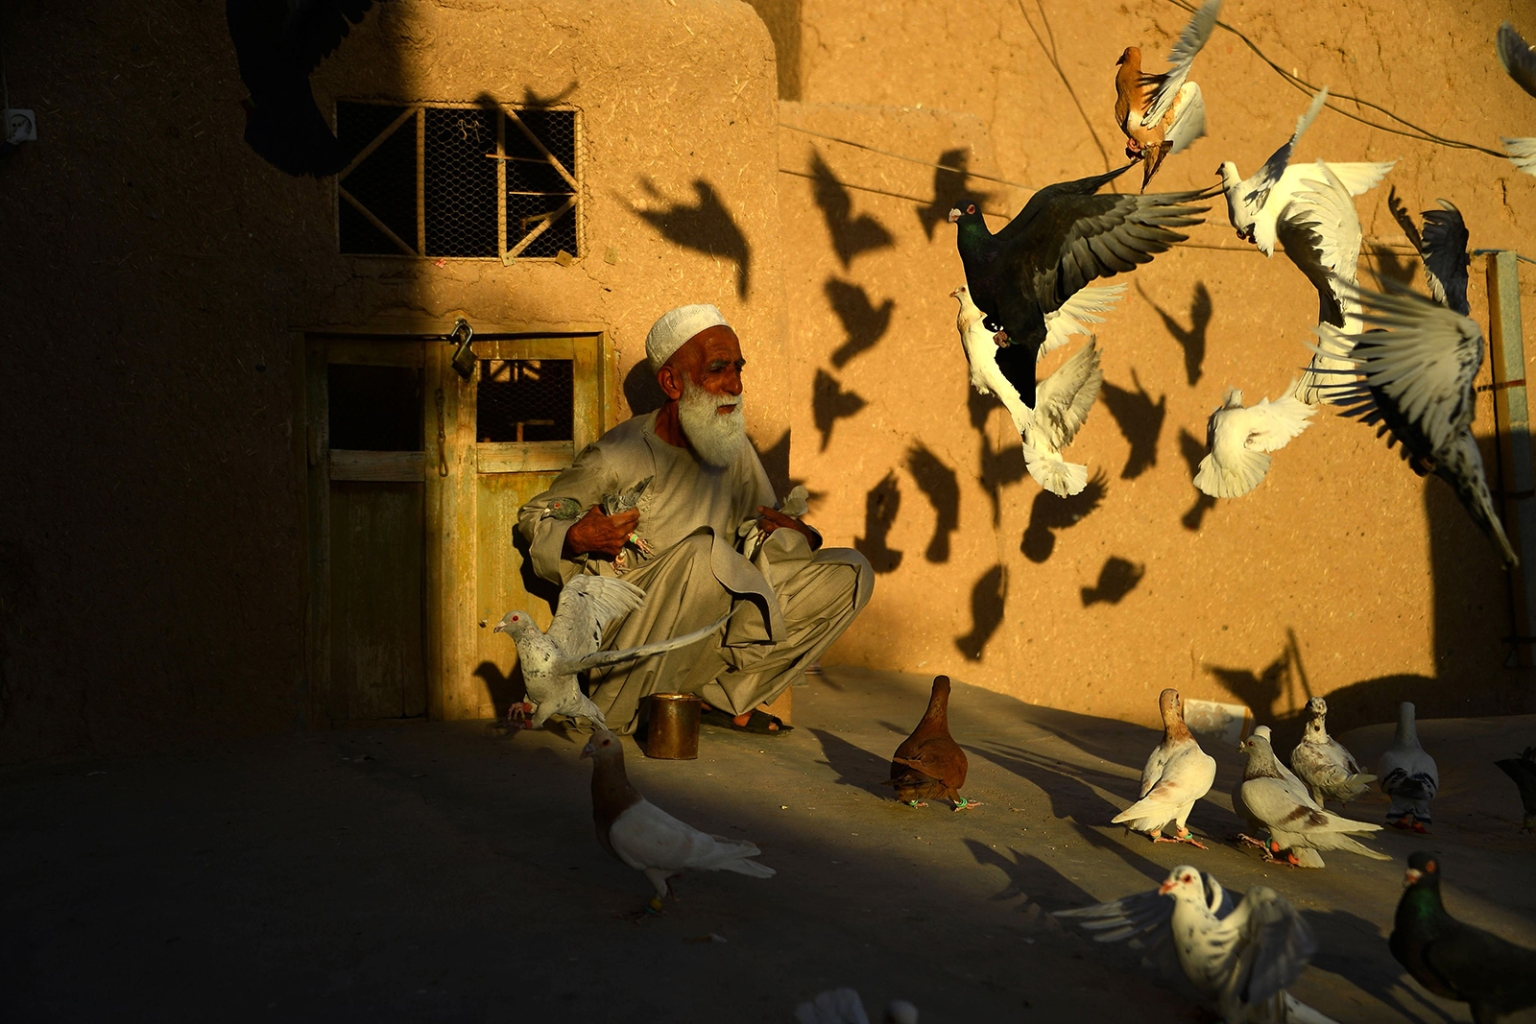 Afghan pigeon fancier Abdul Ghani feeds his pigeons as they fly from the rooftop of his home in Herat province on June 30. HOSHANG HASHIMI/AFP/GETTY IMAGES